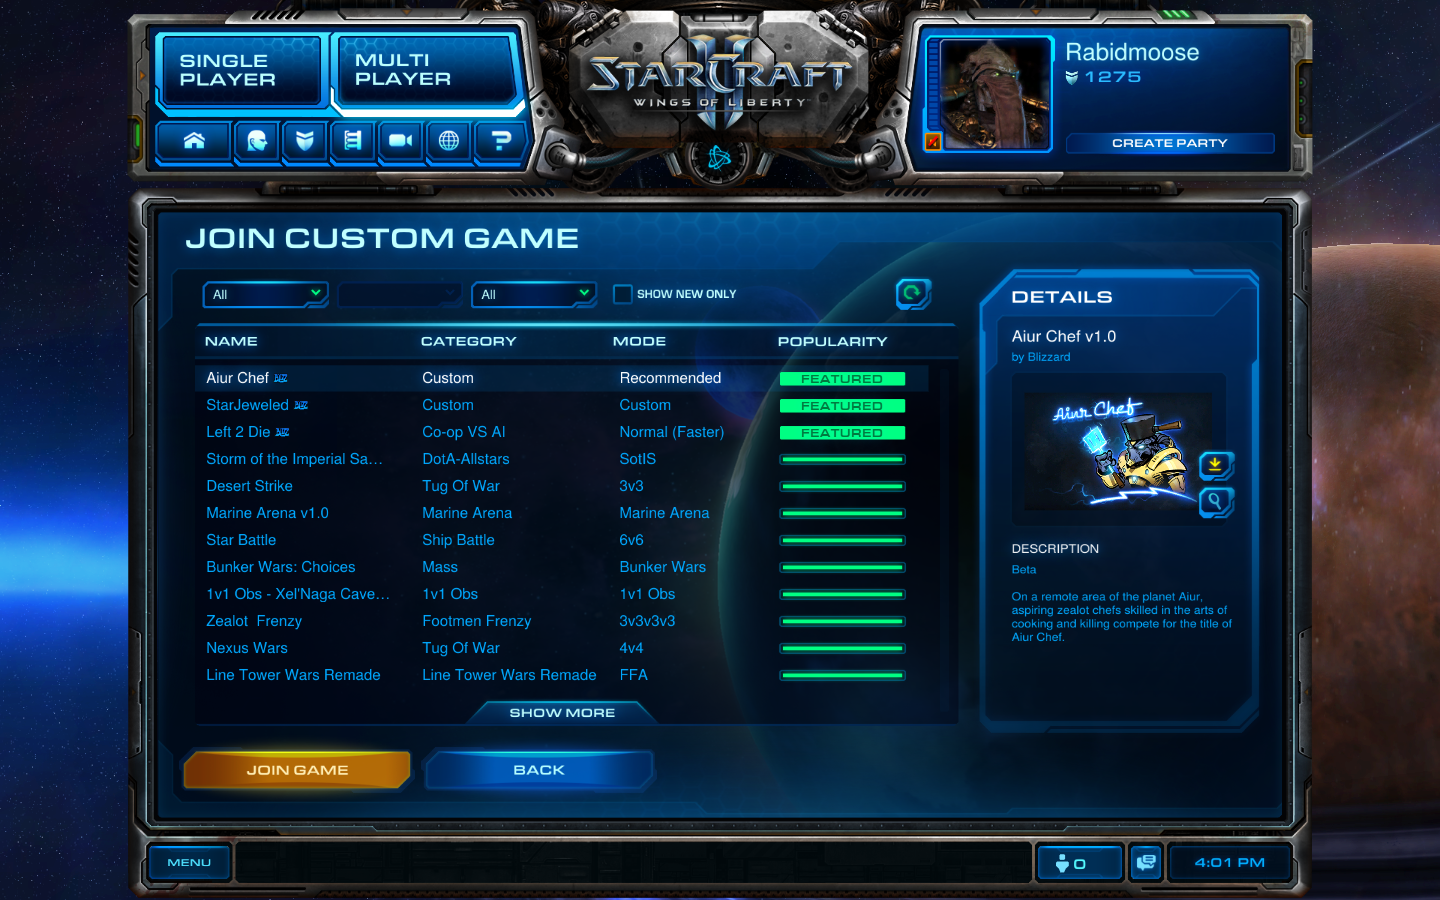 AI joins a custom StarCraft 2 game